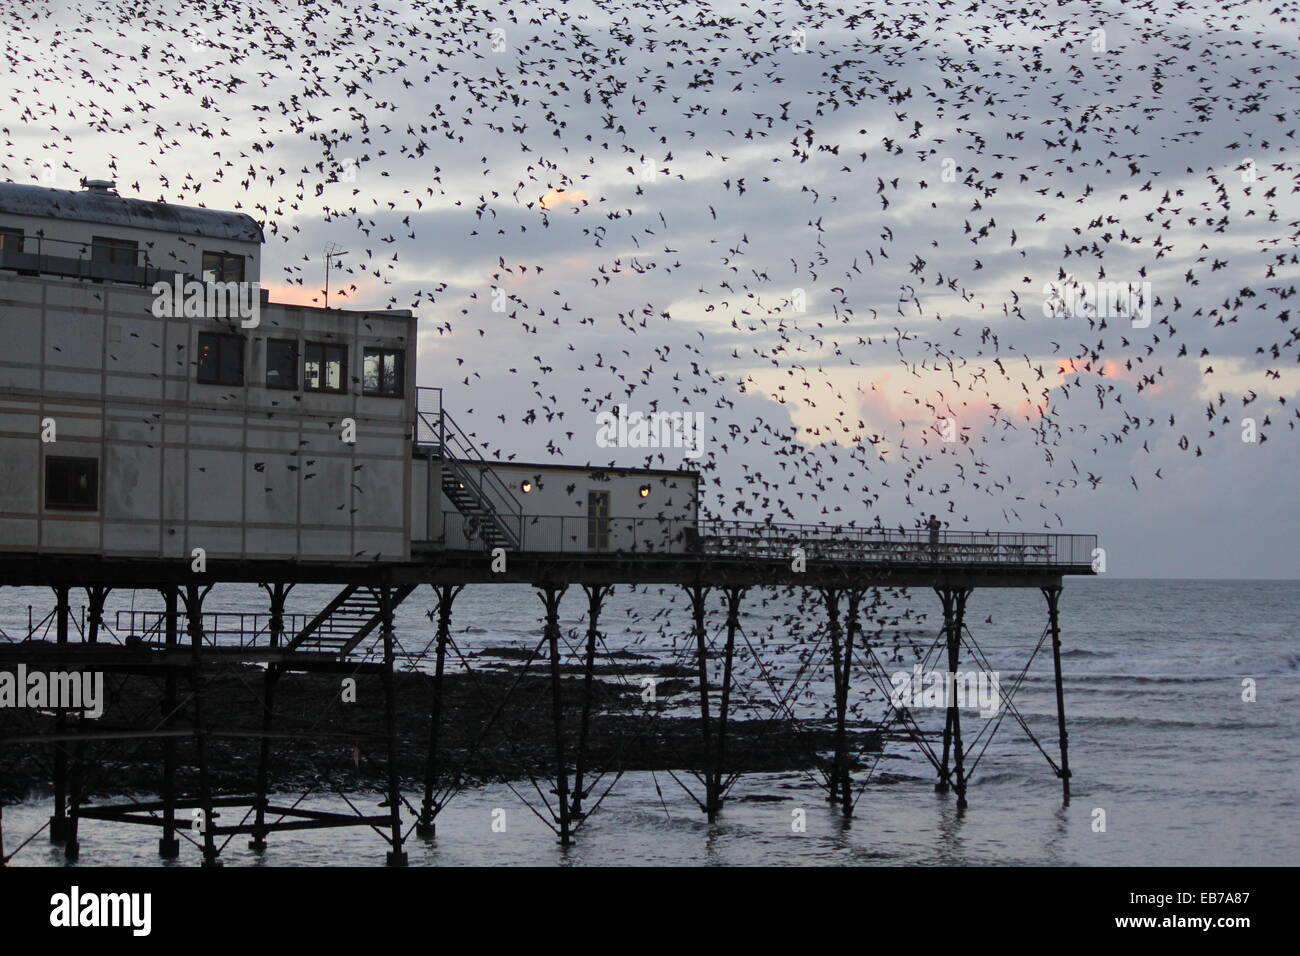 Aberystwyth Wales . A murmuration of starlings return to roost on the pier at sundown. - Stock Image